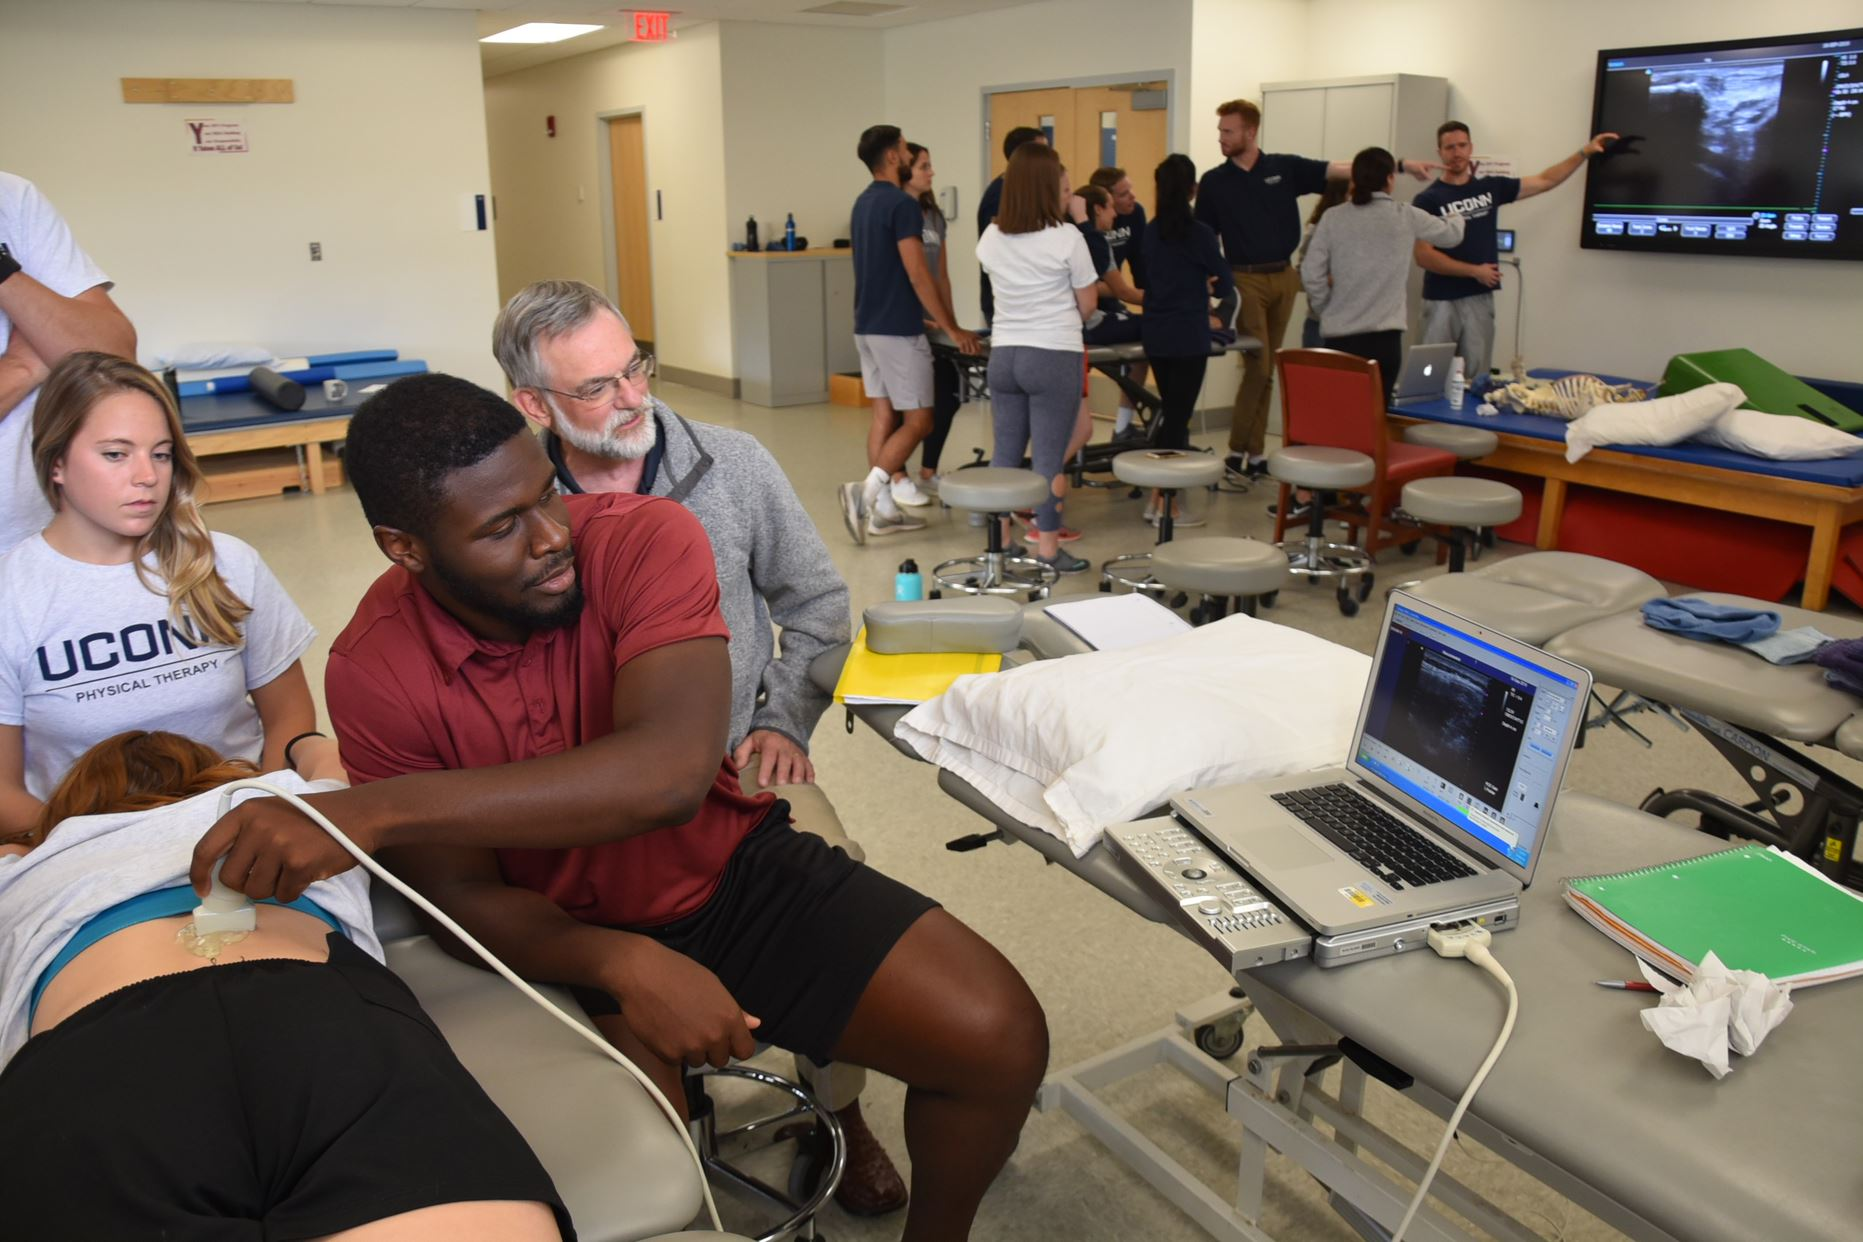 student practices an ultrasound on a classmate while faculty provide guidance